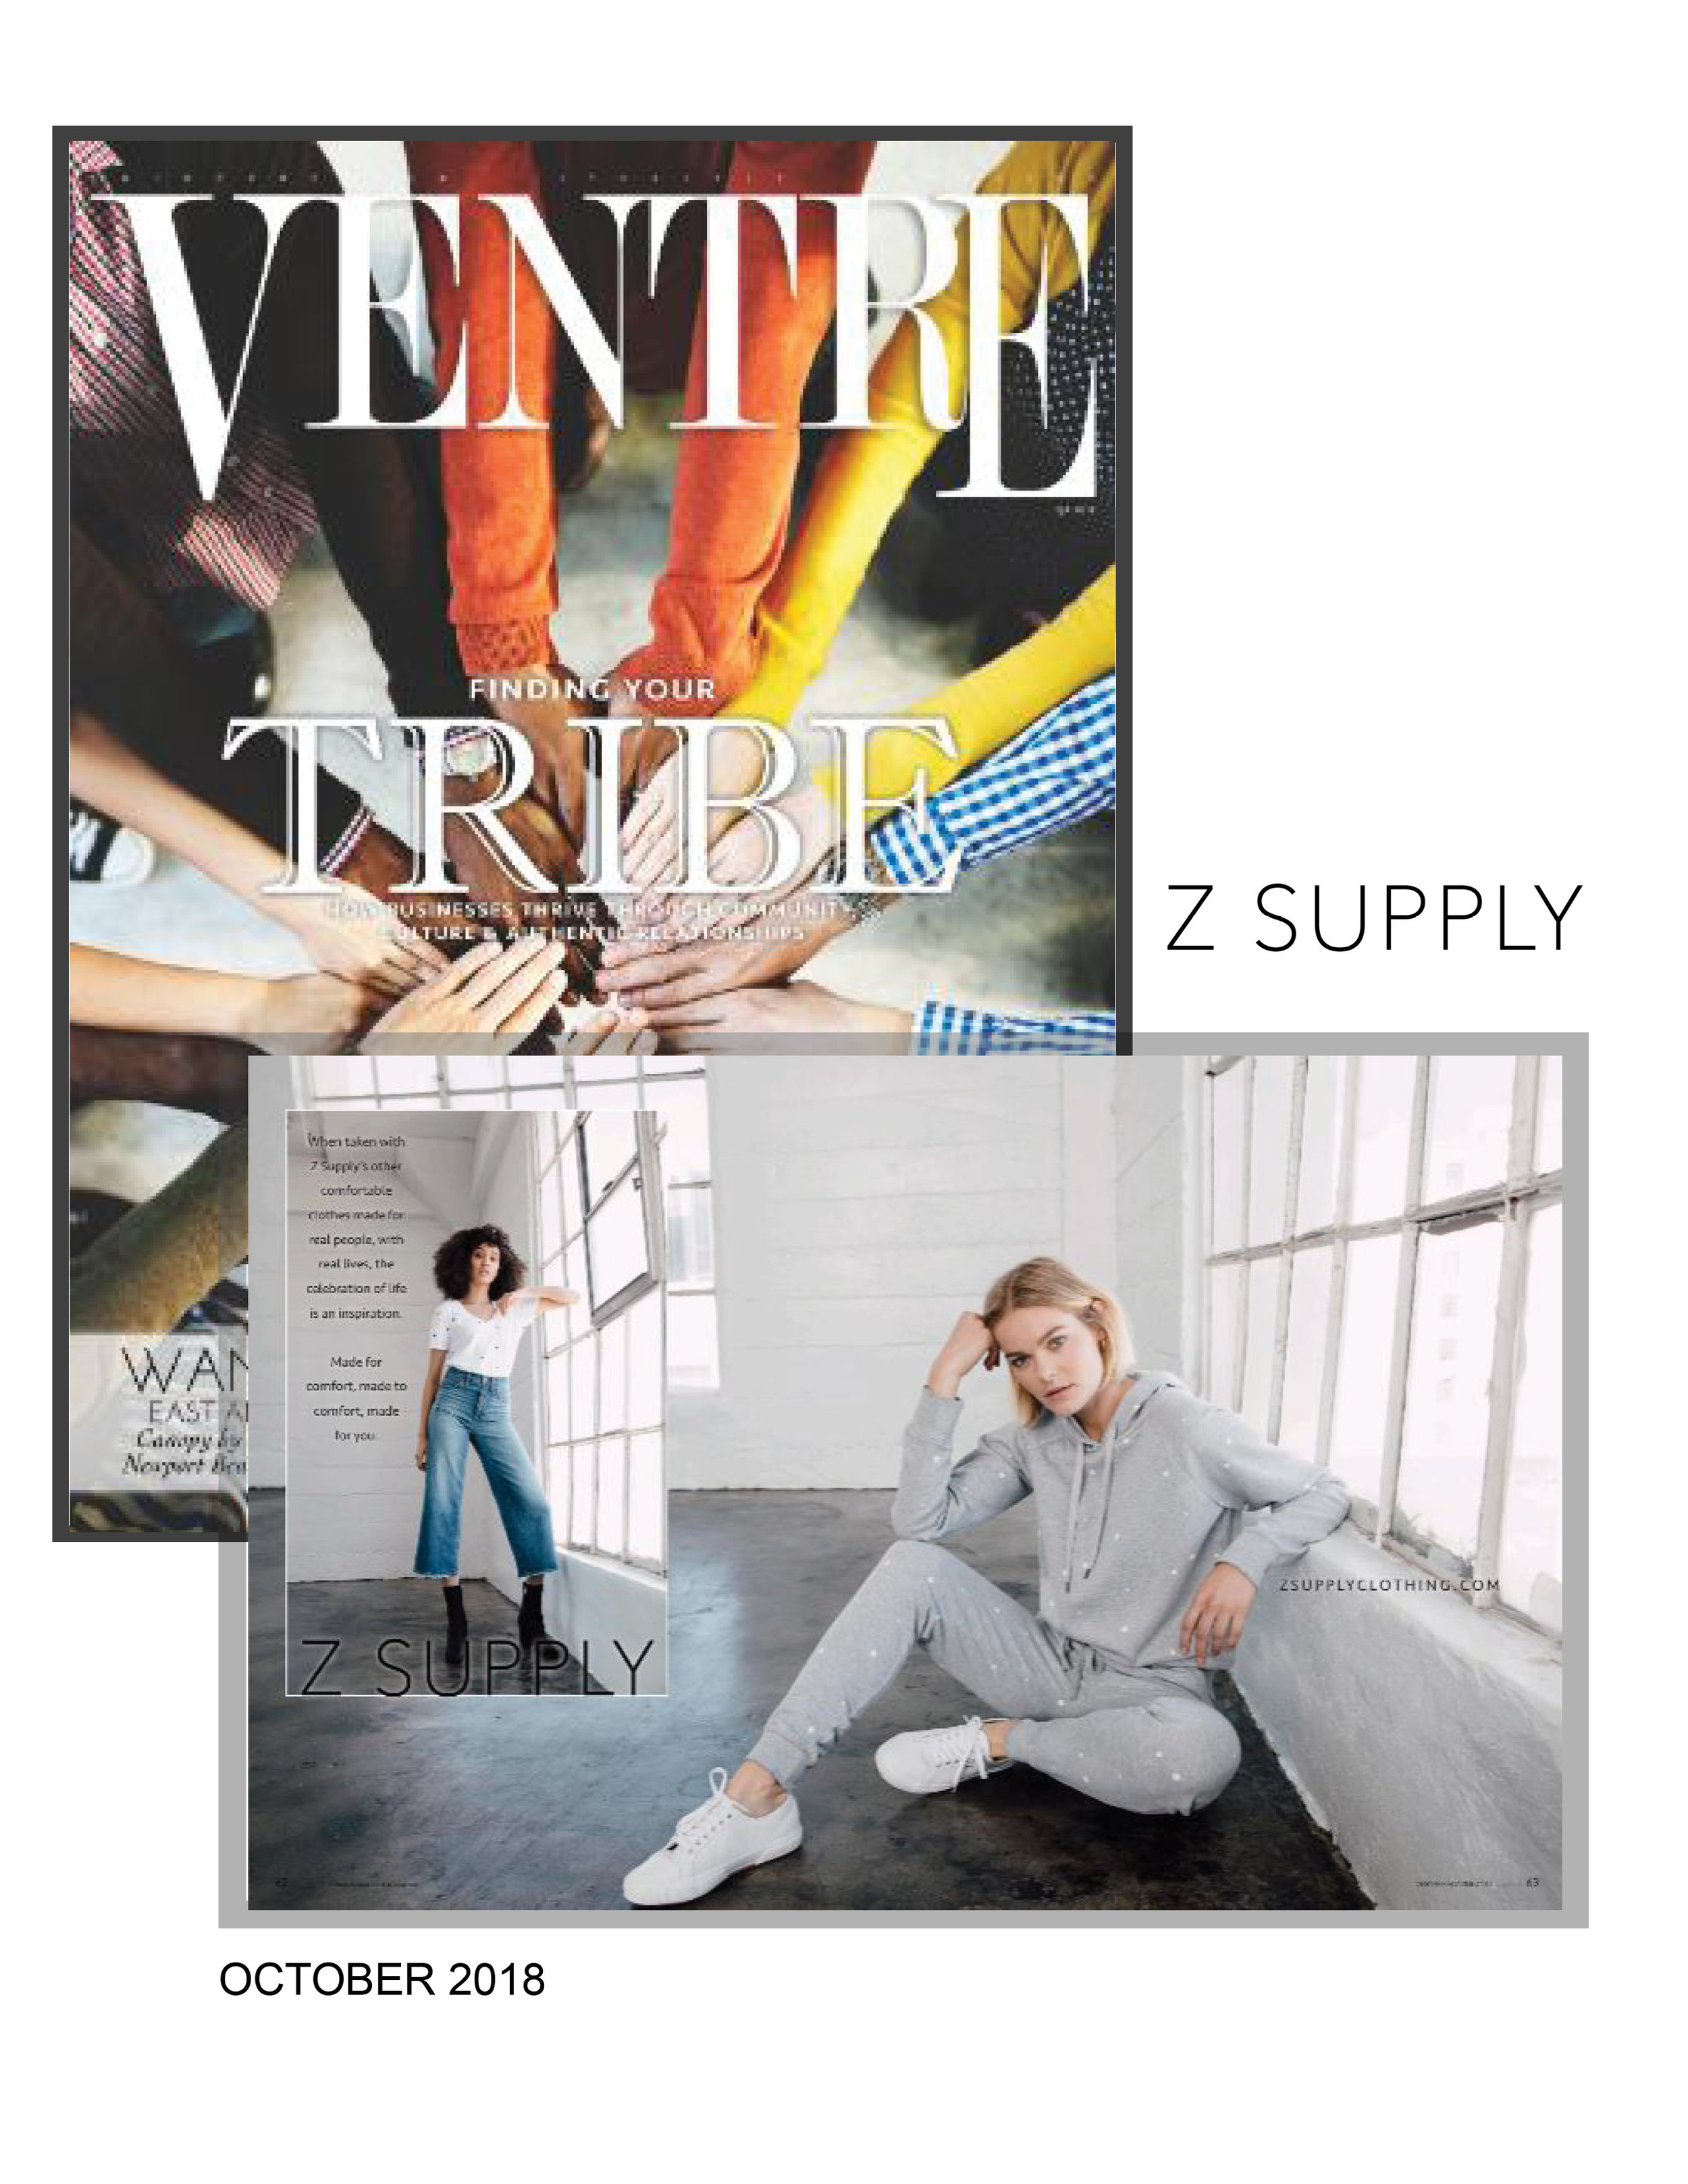 ZSupply_VentreMagazine_October2018.jpg